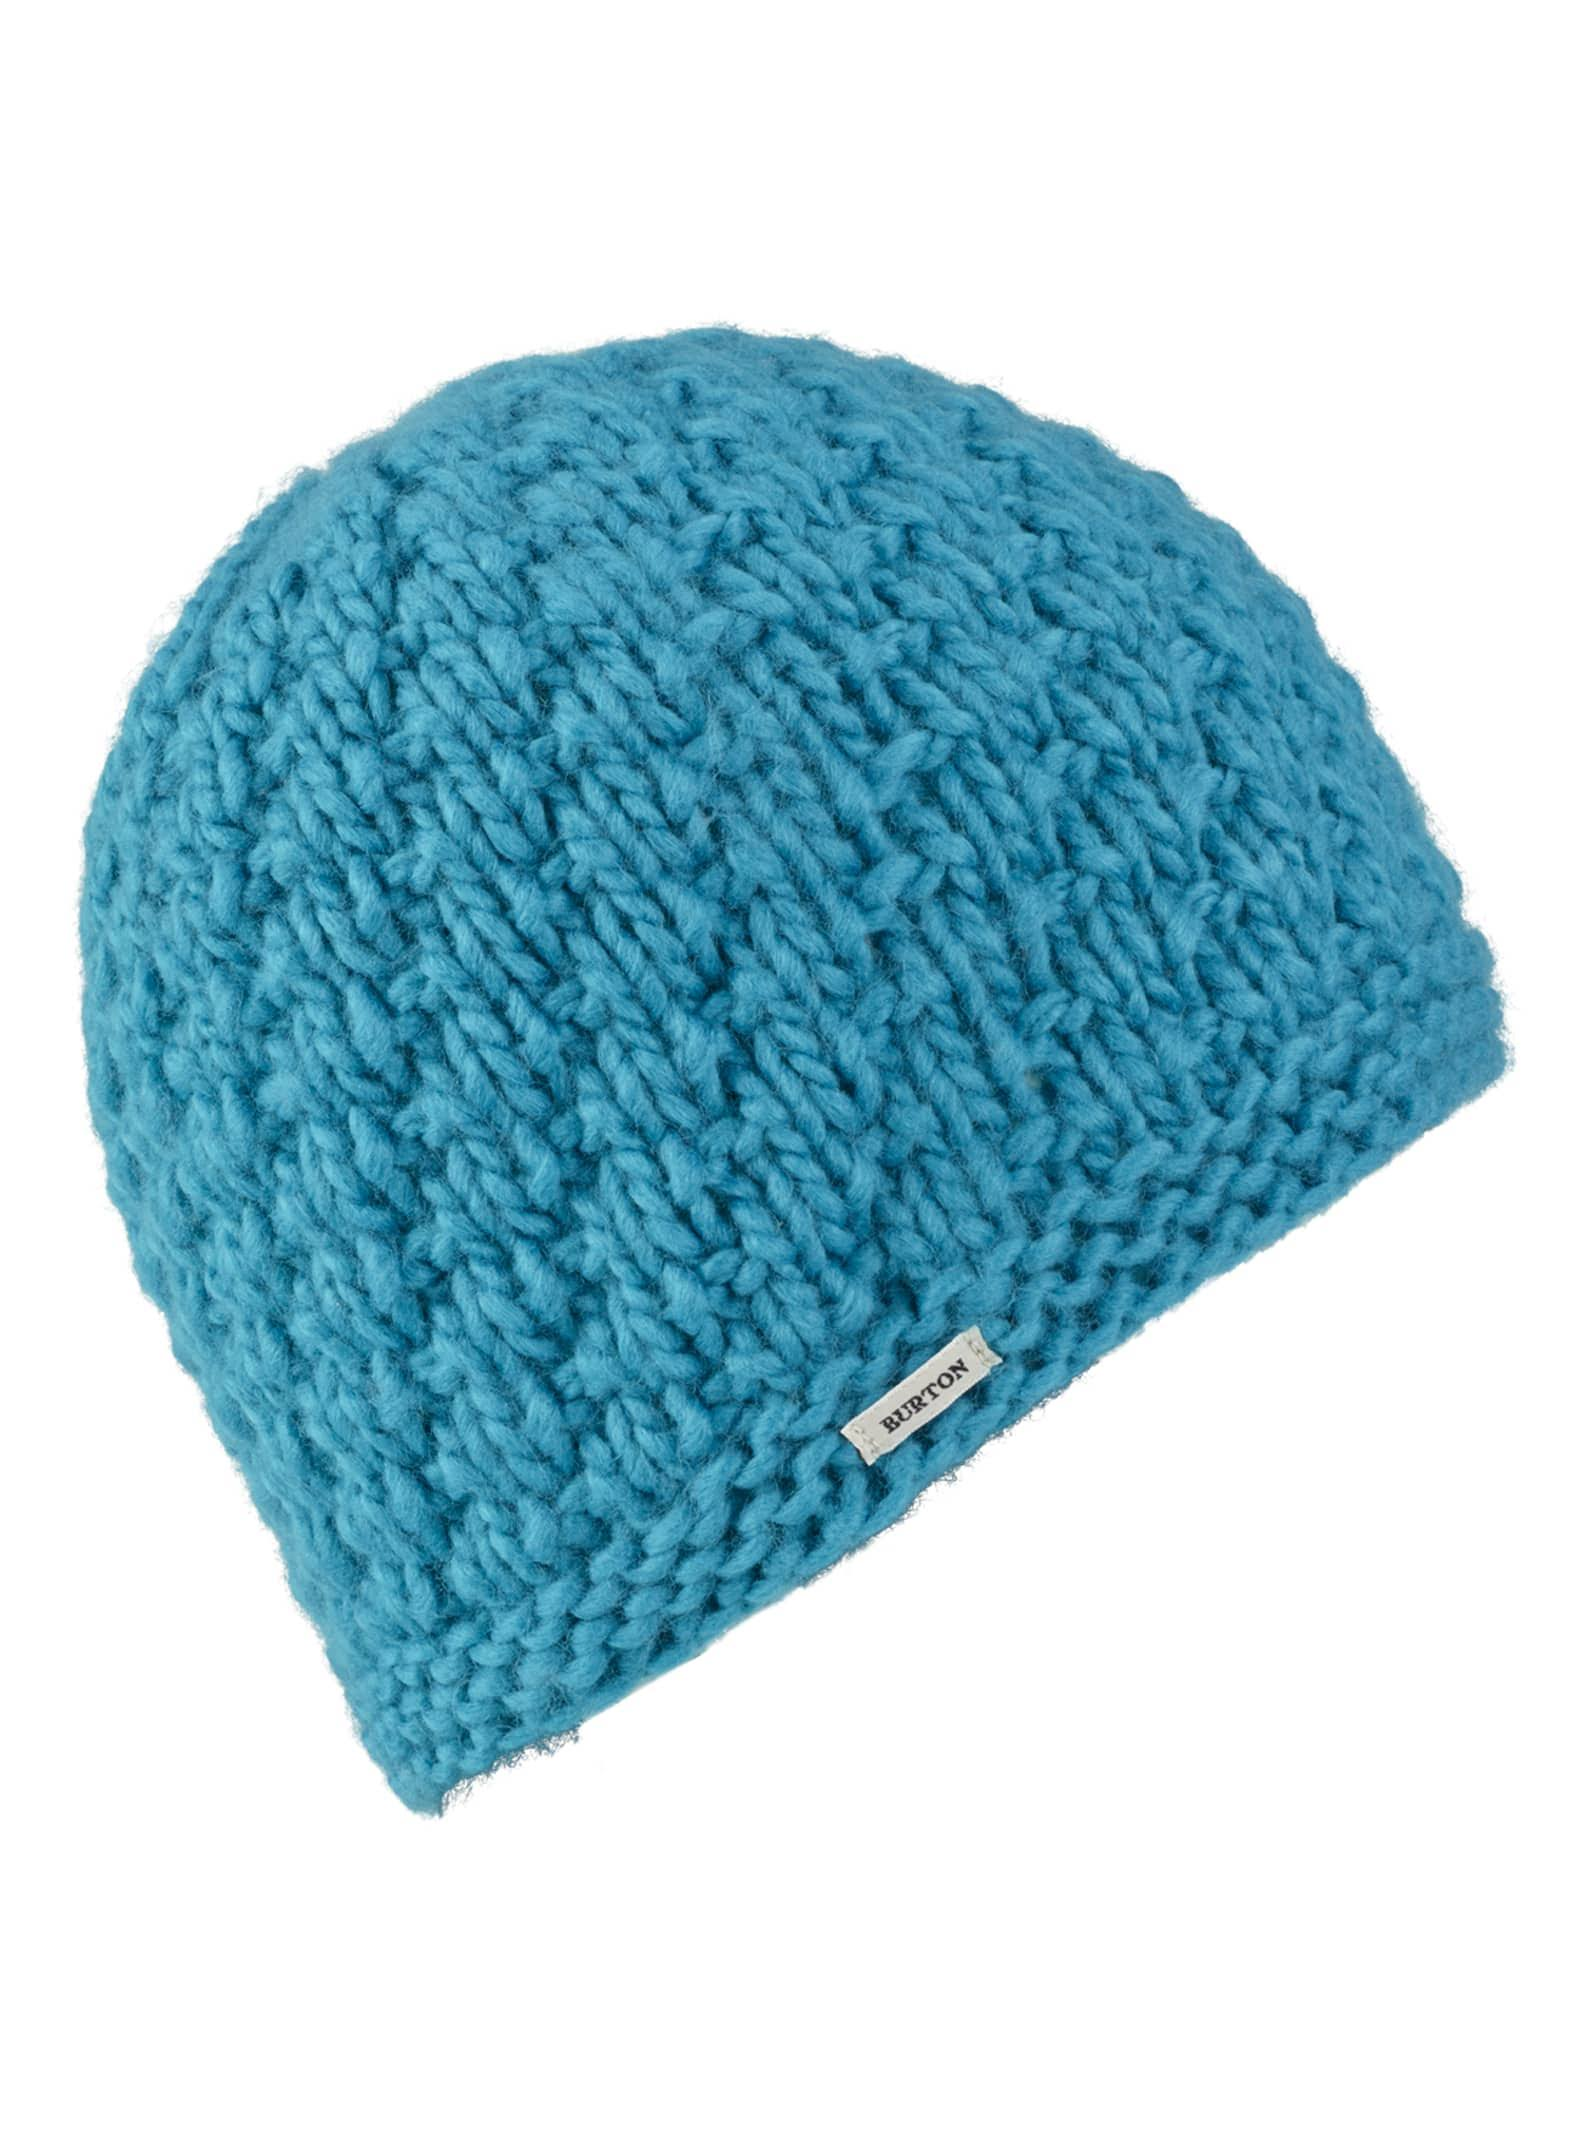 Burton Women's Big Bertha Beanie in Tahoe